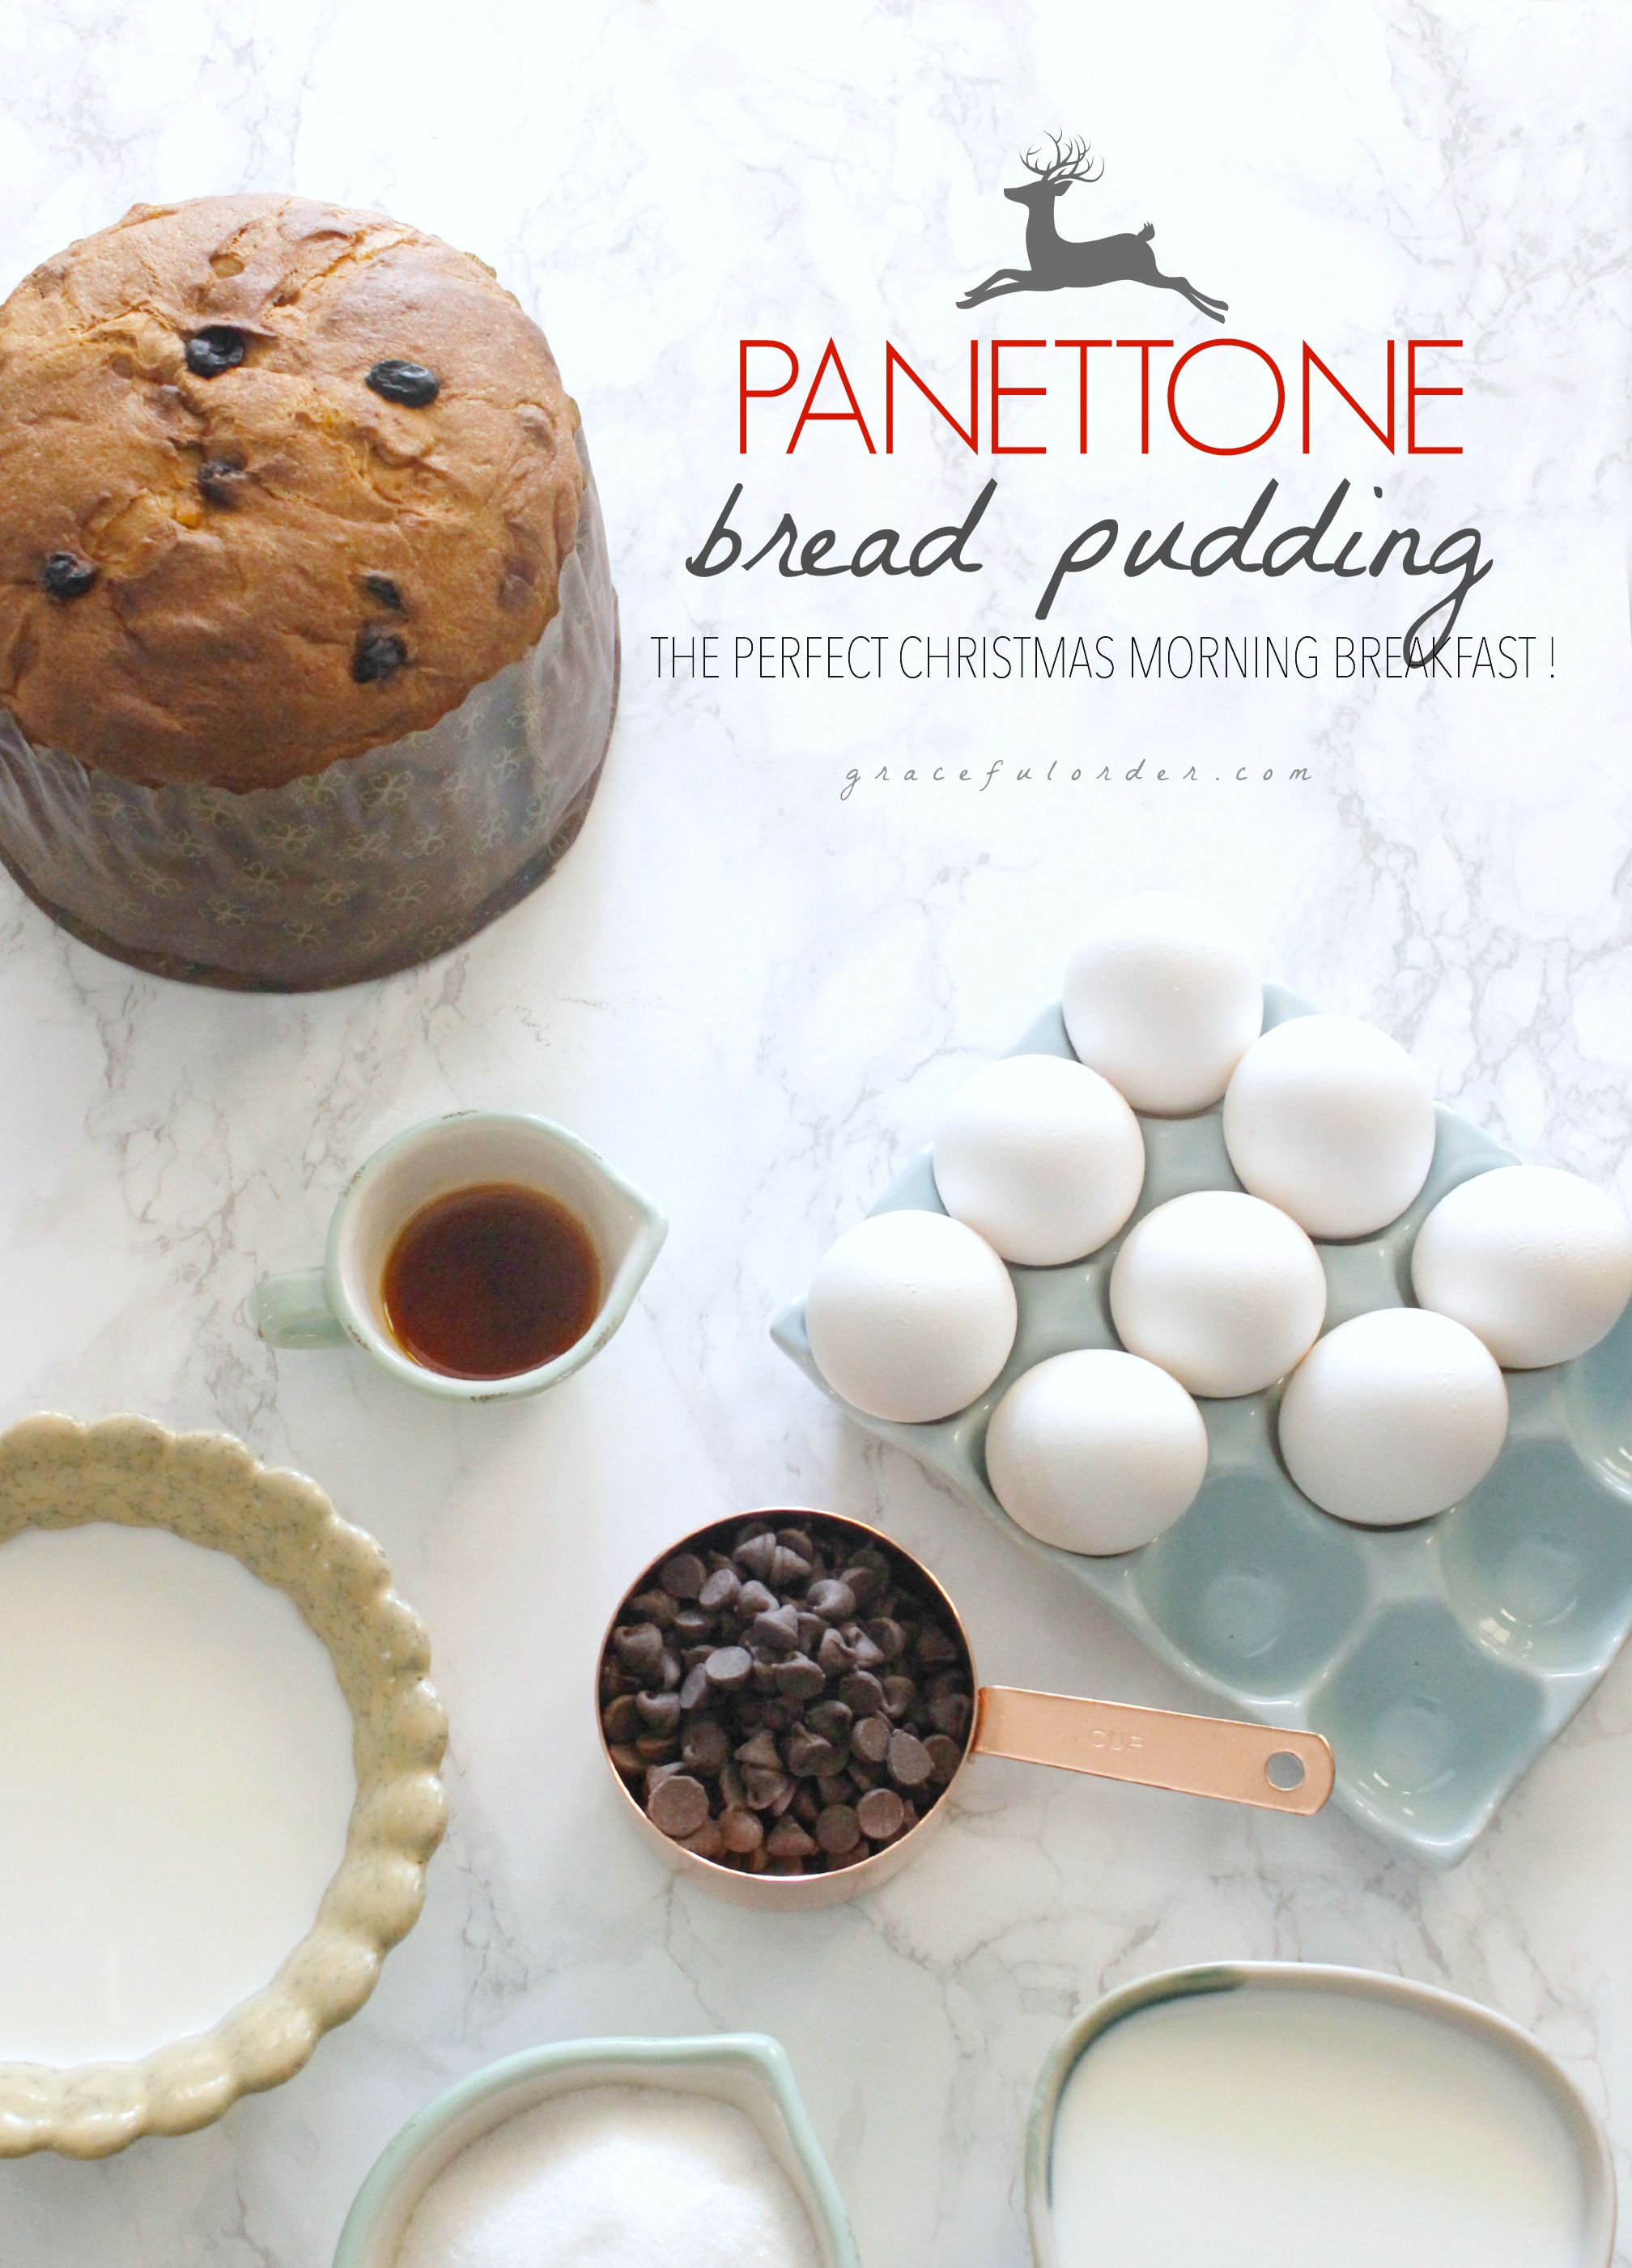 Panettone Bread Pudding - Graceful Order